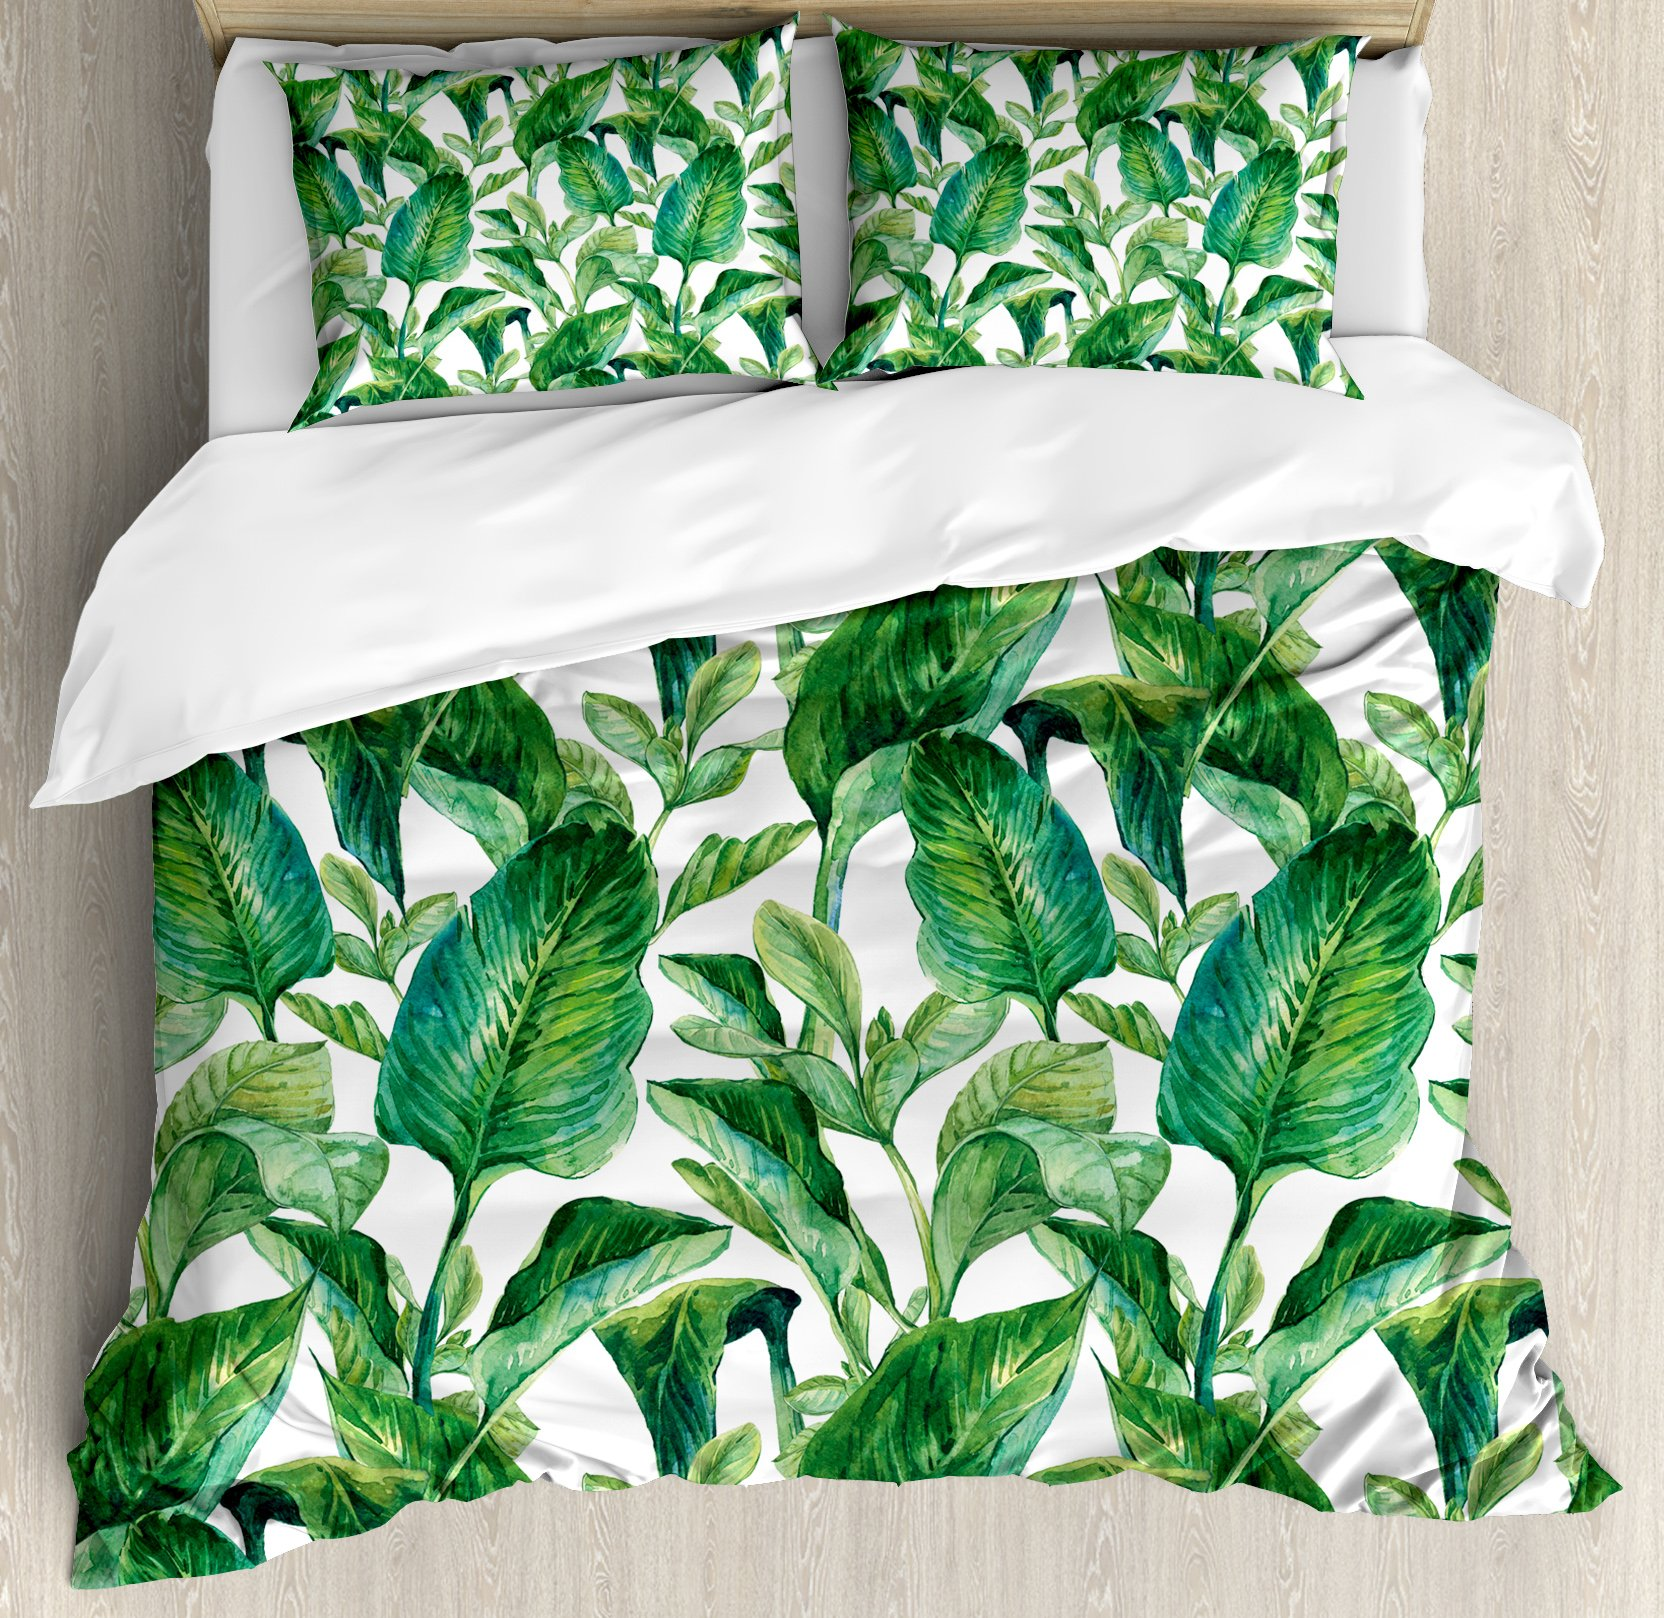 Ambesonne Leaf Duvet Cover Set Queen Size, Romantic Holiday Island Hawaiian Banana Trees Watercolored Image, Decorative 3 Piece Bedding Set with 2 Pillow Shams, Dark Green and Forest Green